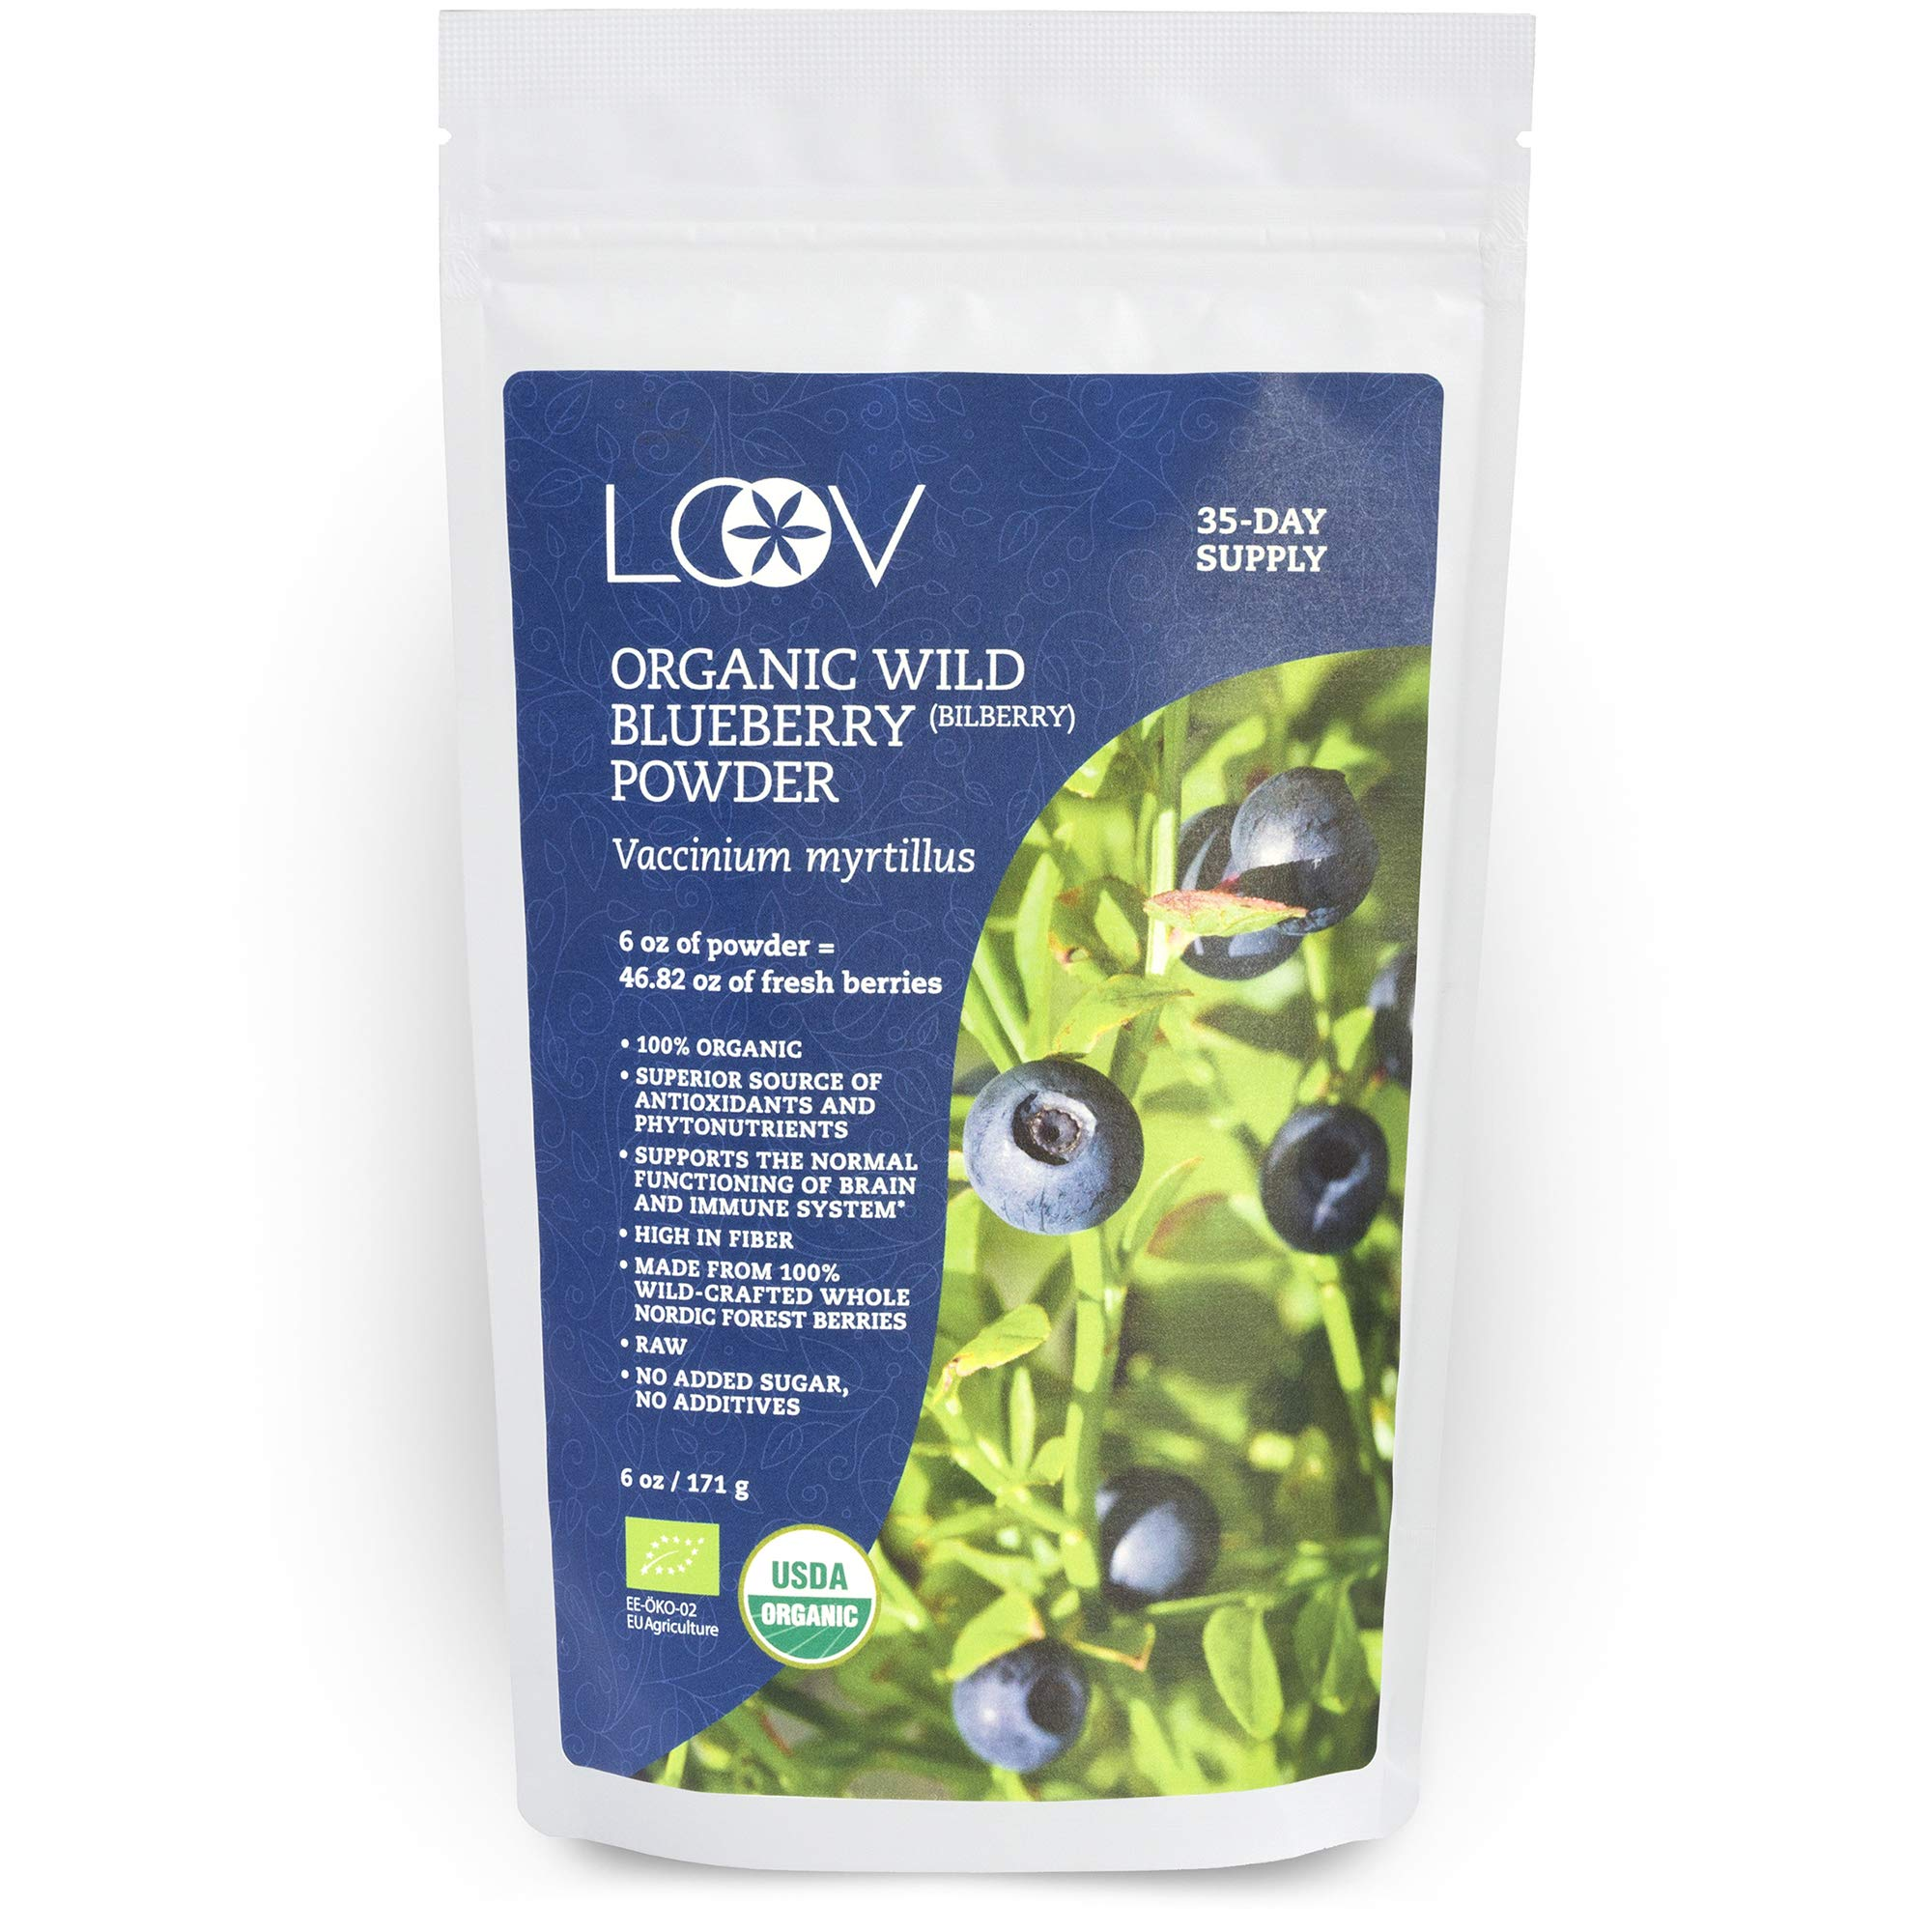 Organic Wild Blueberry Powder, wild-crafted from Nordic forests, 100% whole fruit blueberry, 35-day supply, 6 oz, freeze-dried and powdered wild blueberries, high in anthocyanins, free recipe book